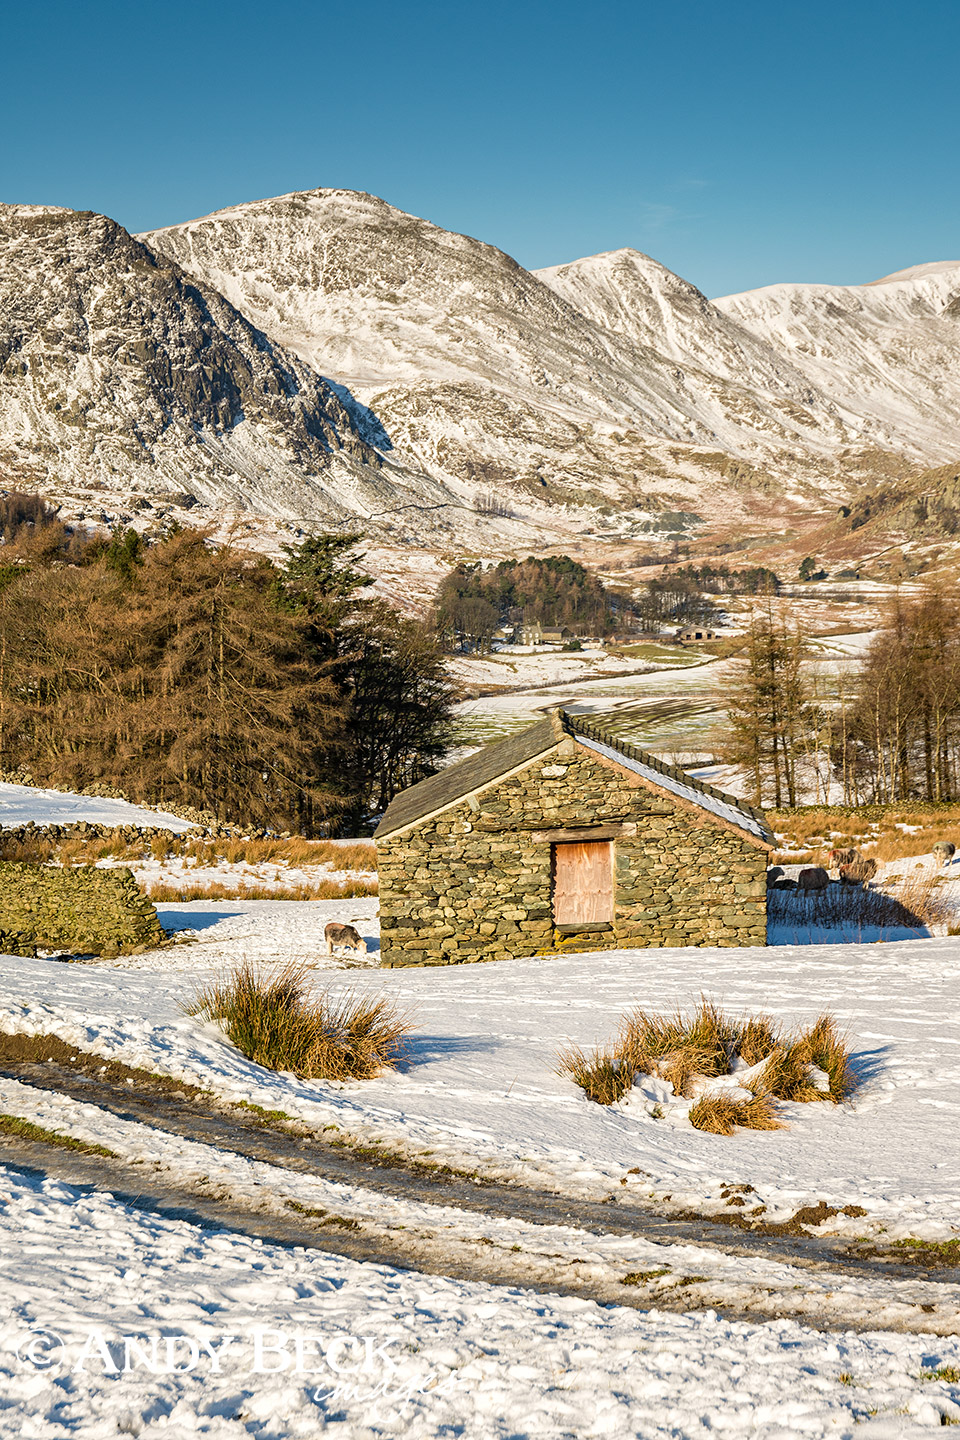 The Kentmere valley in winter